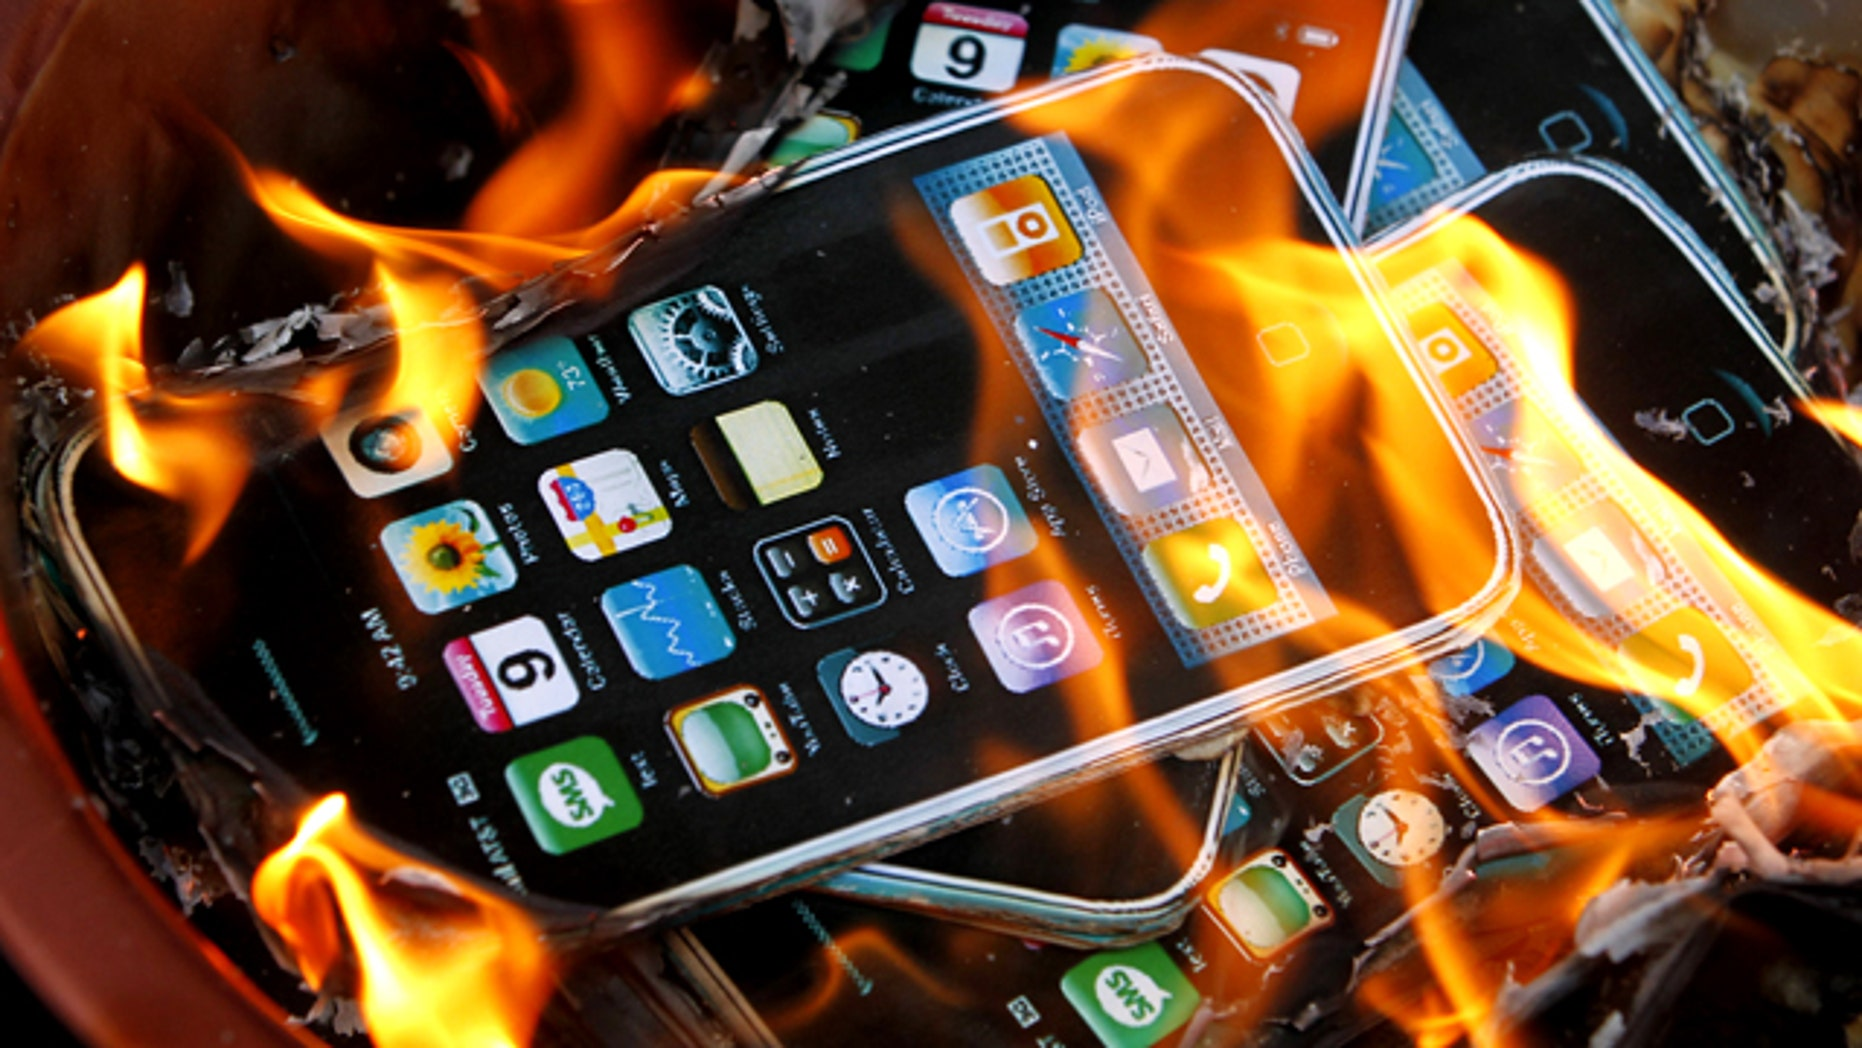 May 25, 2010: Cardboard cutouts resembling iPhones are in flames after they were set on fire by labor activists near the Foxconn office in Hong Kong, following a string of deaths at the world's largest contract maker of electronics.